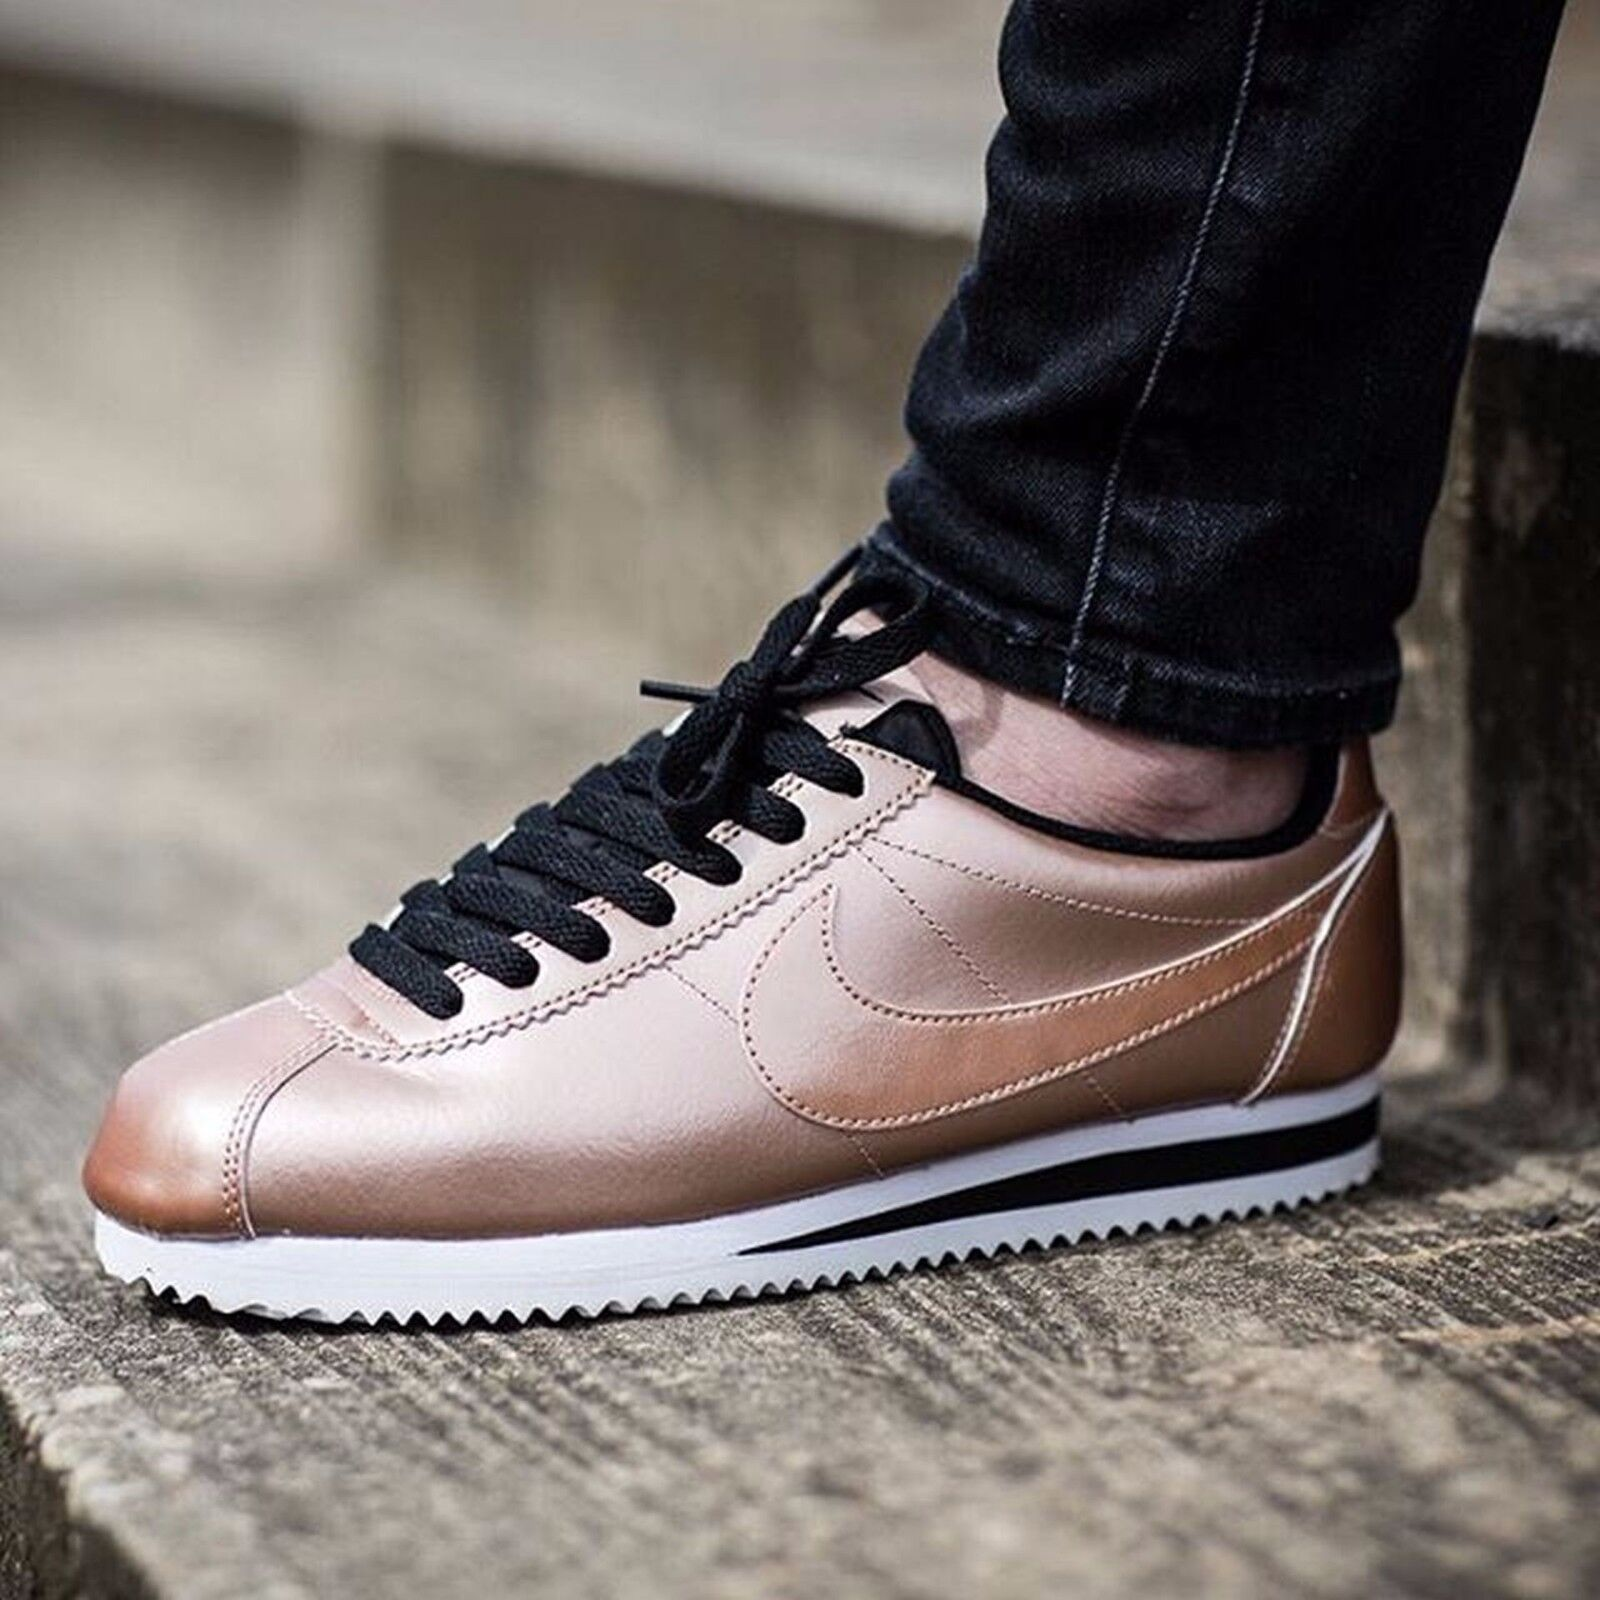 Nike Cortez Classic Leather Metallic Bronze Womens Shoes Size 9.5